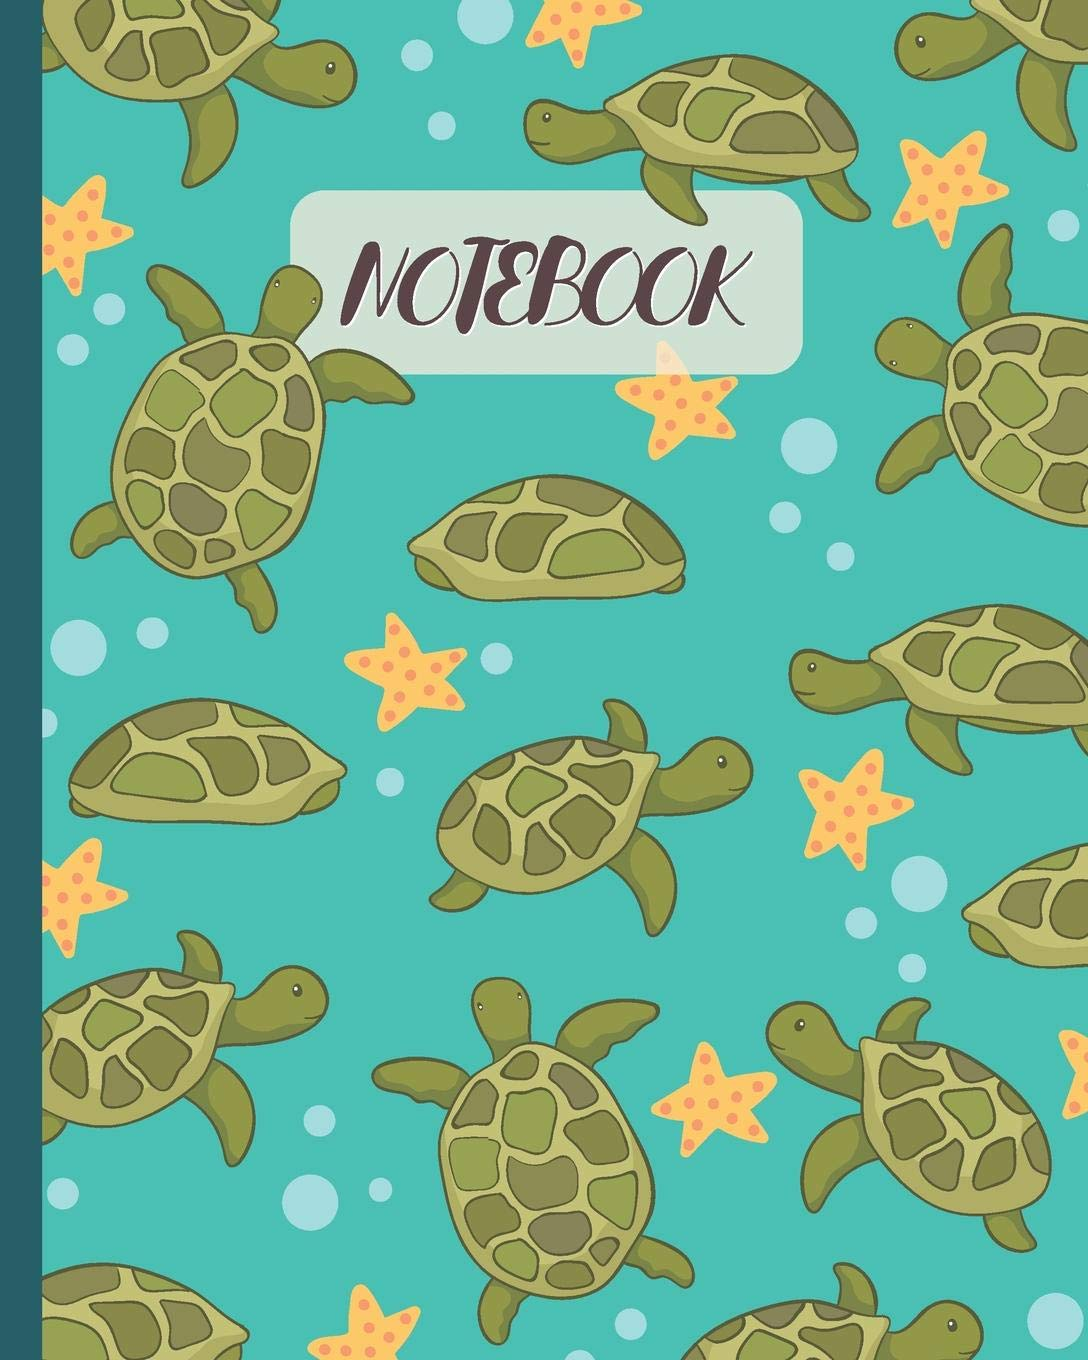 Notebook Cute Turtle Starfish Cartoon Lined Notebook Diary Track Log Journal Gift Idea For Kids Teens Men Women 8 X10 120 Pages Amazon Co Uk Happy Pattern Colorful 9781080948871 Books